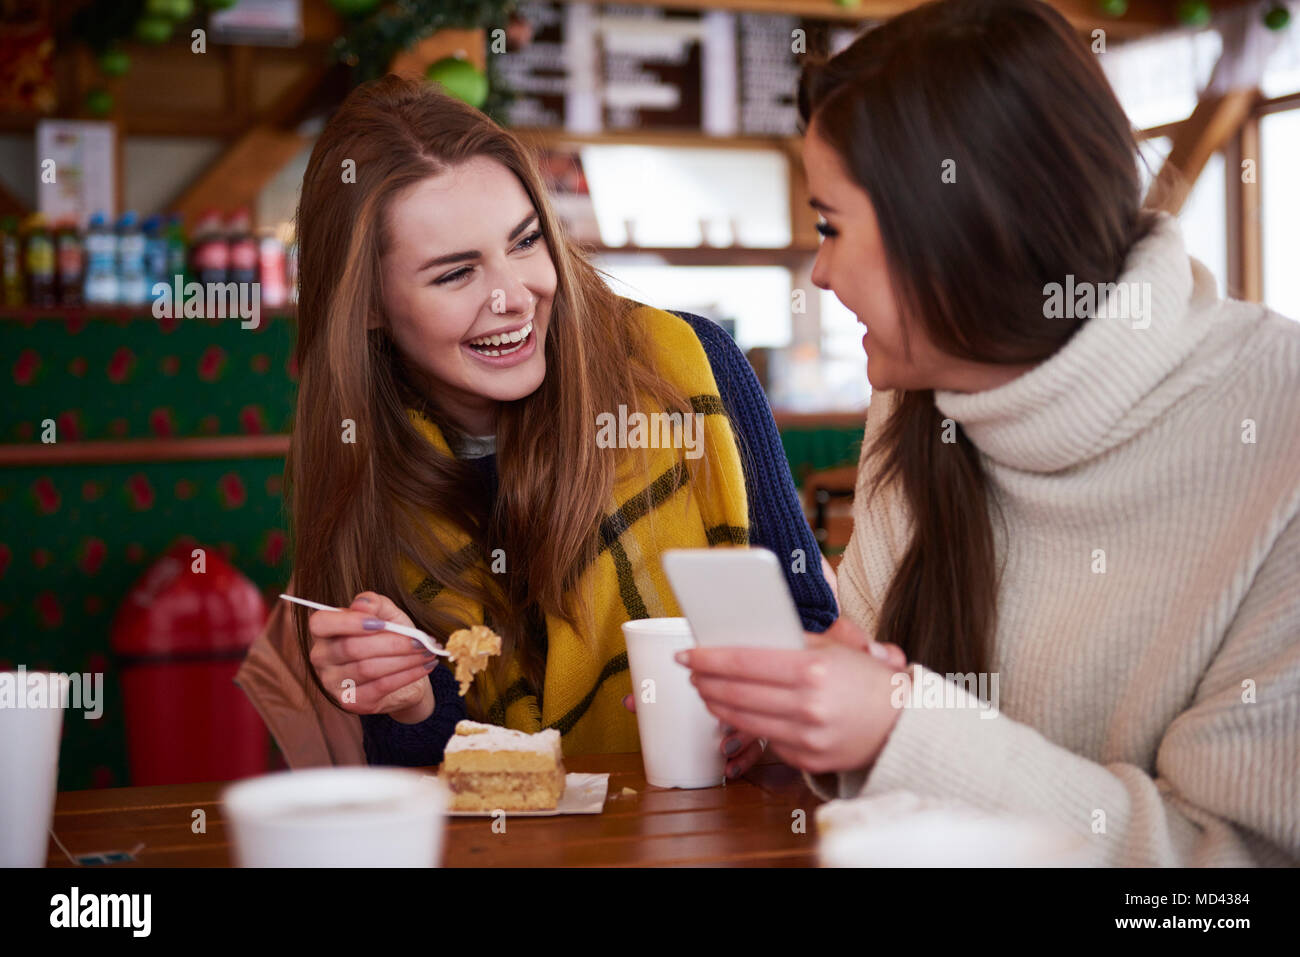 Young women smiling over text message on mobile phone - Stock Image